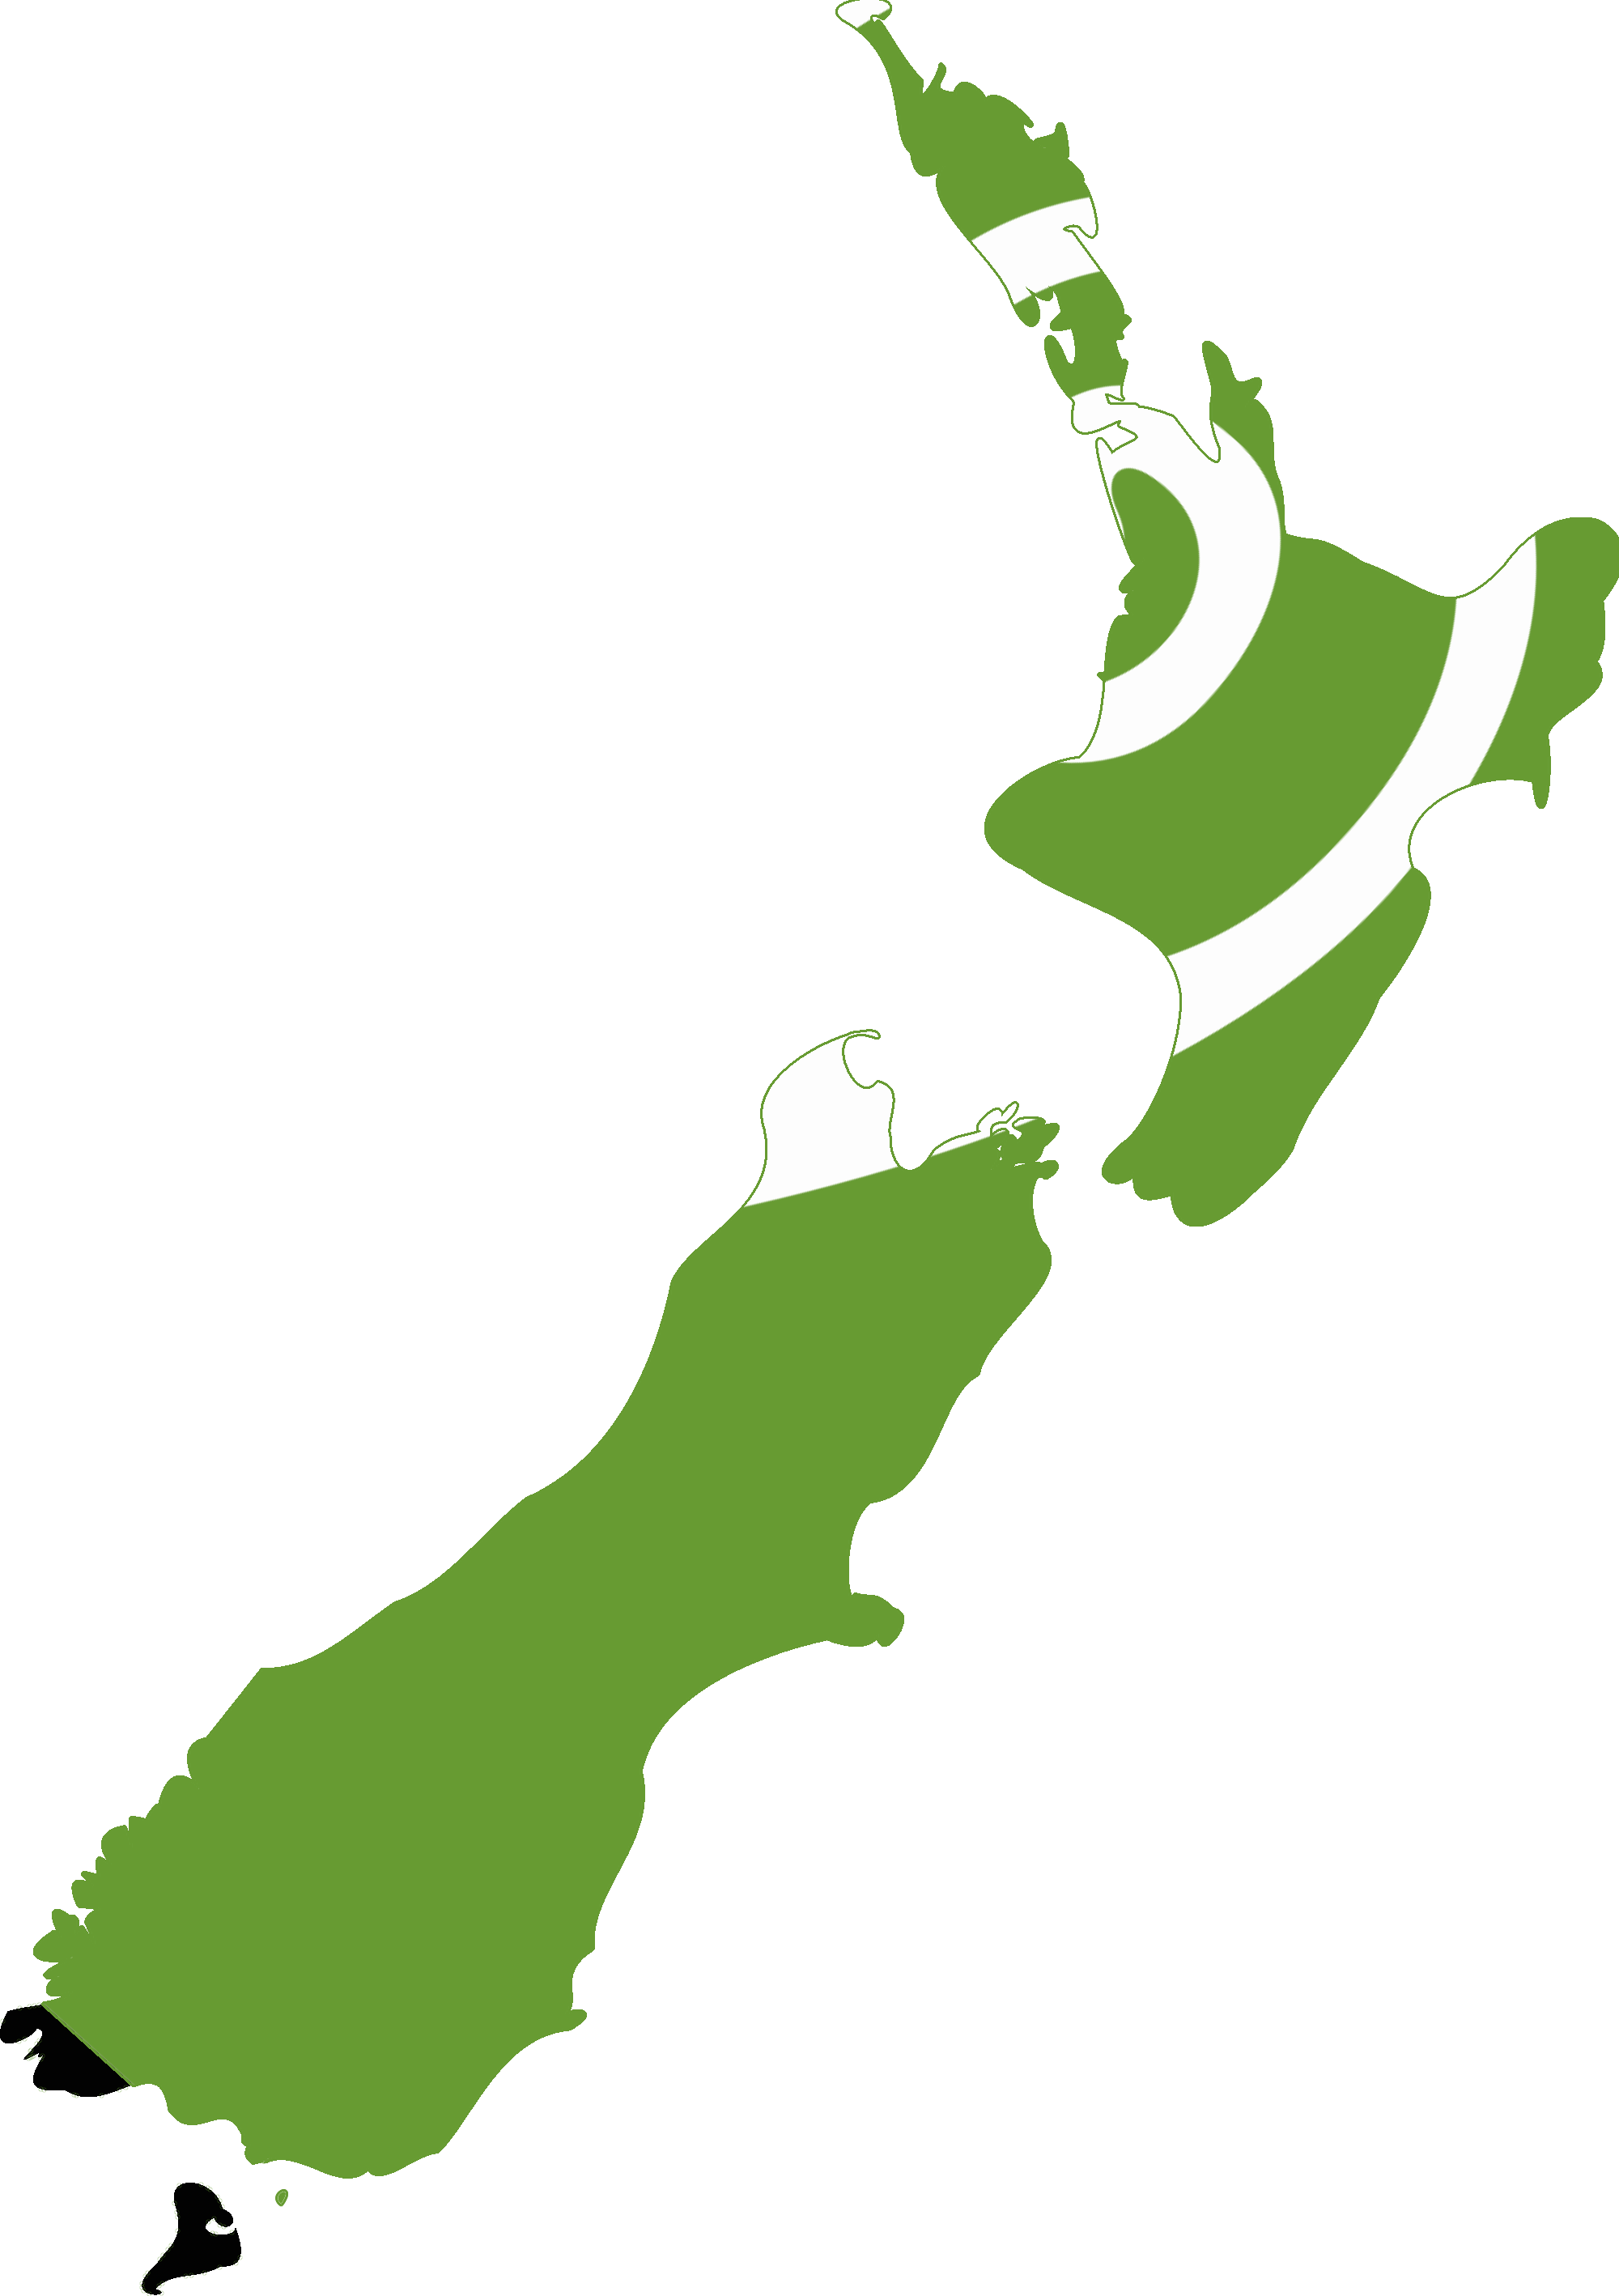 New Zealand PNG - 40298